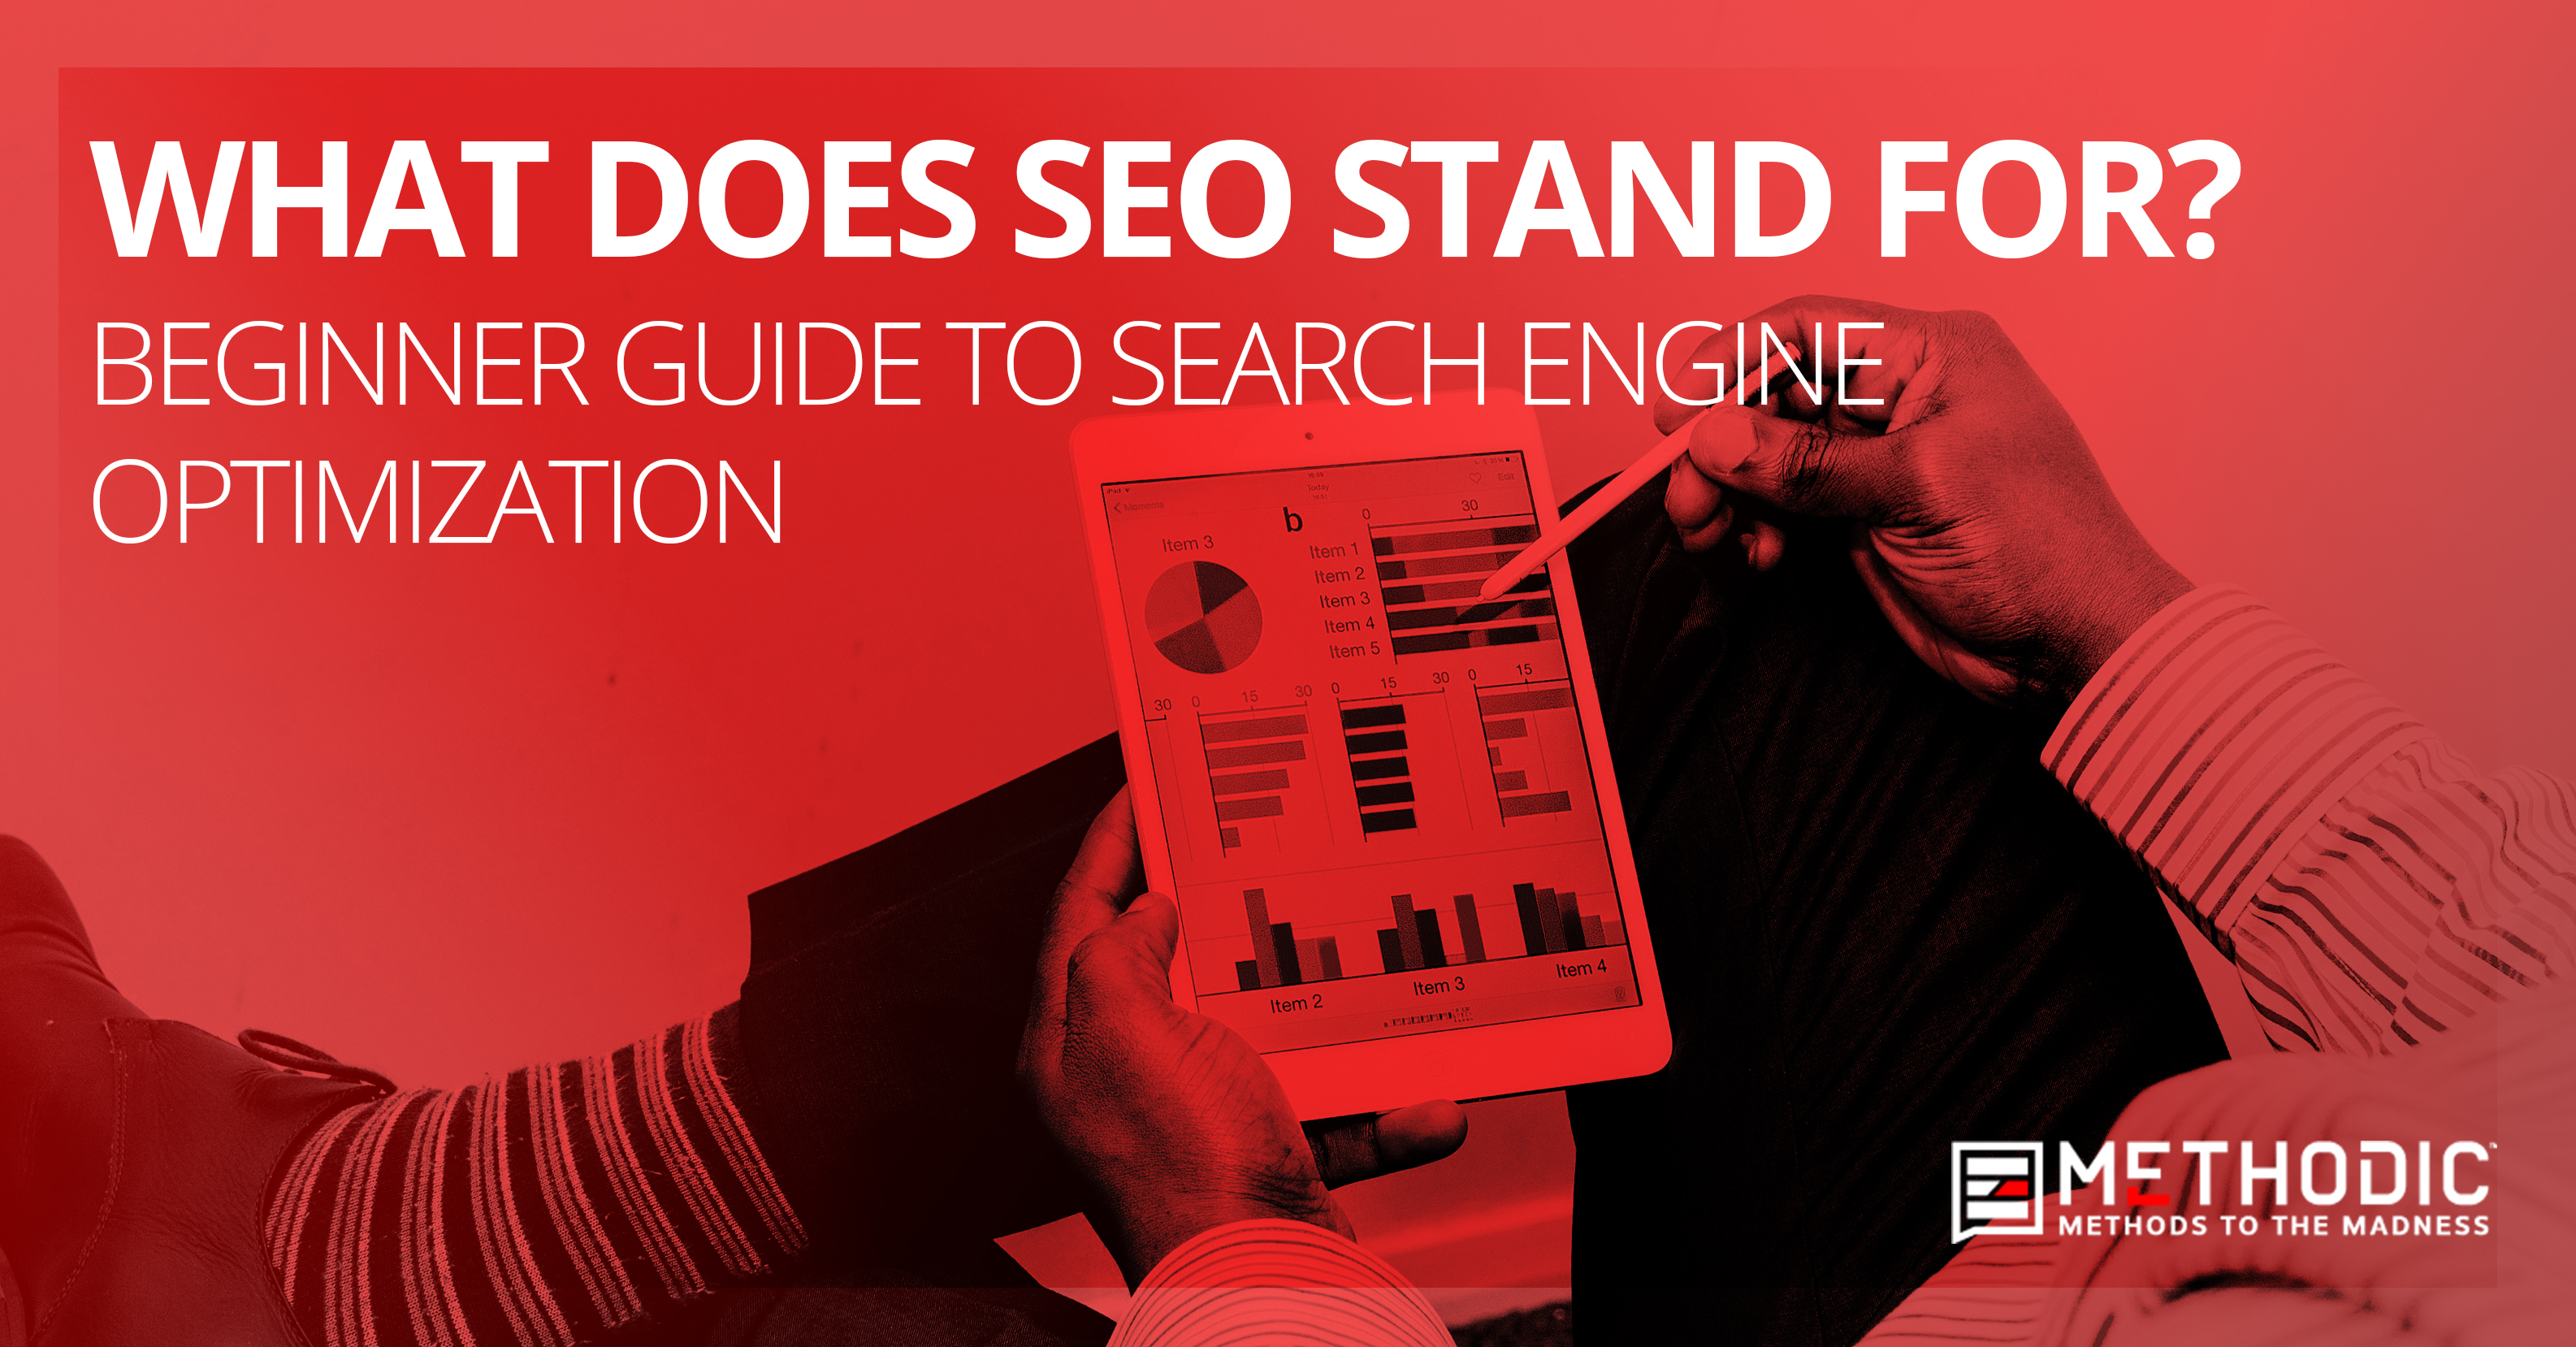 What Does SEO Stand For? Beginner Guide to Search Engine Optimization